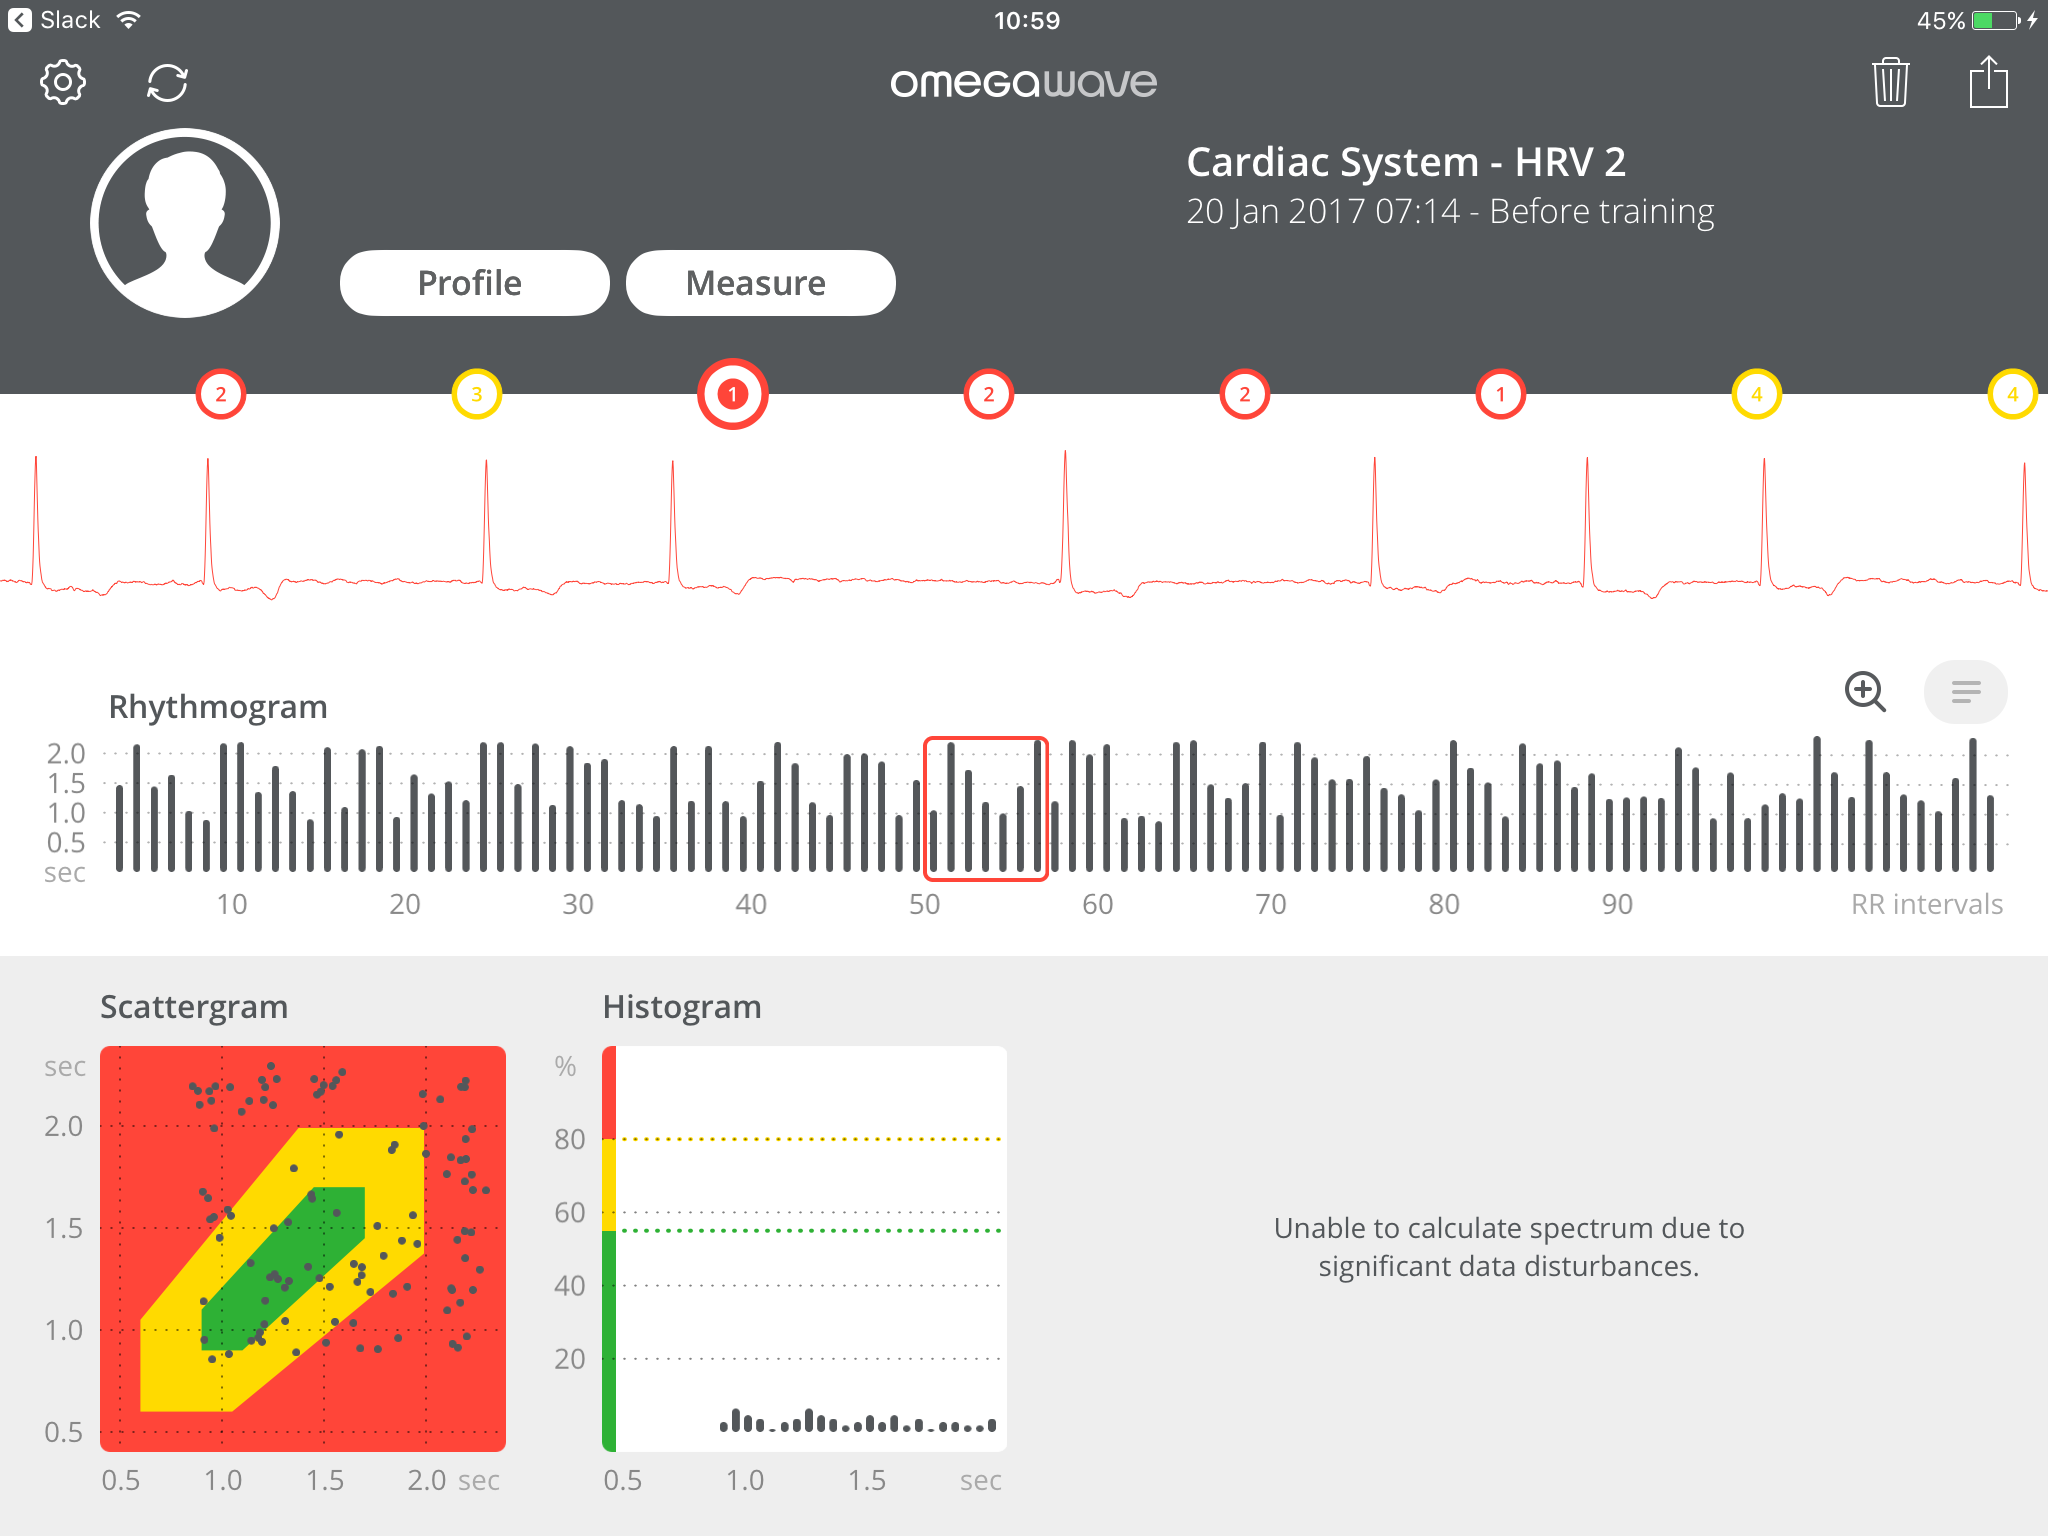 Pre-empting severe cardiac issues with Omegawave – A case study